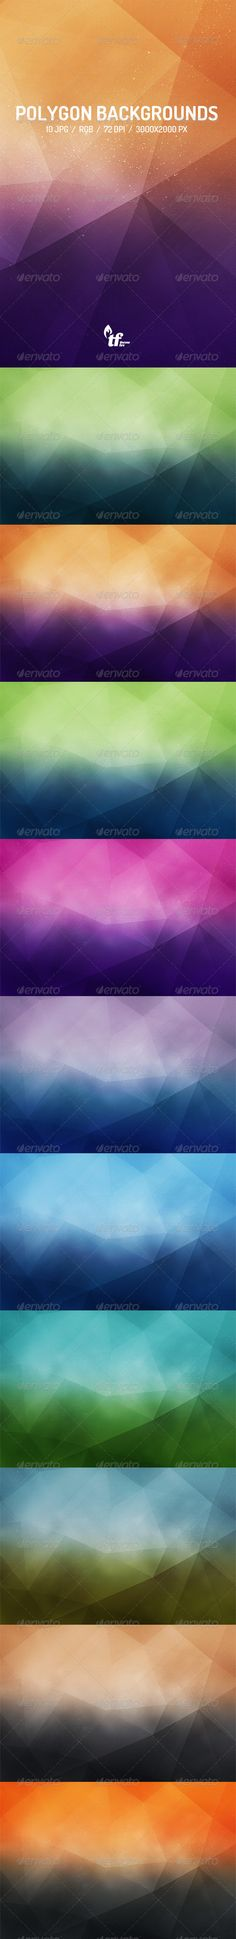 10 Polygon Backgrounds  #stylish #wallpapers #3d • Click here to download ! http://graphicriver.net/item/10-polygon-backgrounds/7690224?ref=pxcr